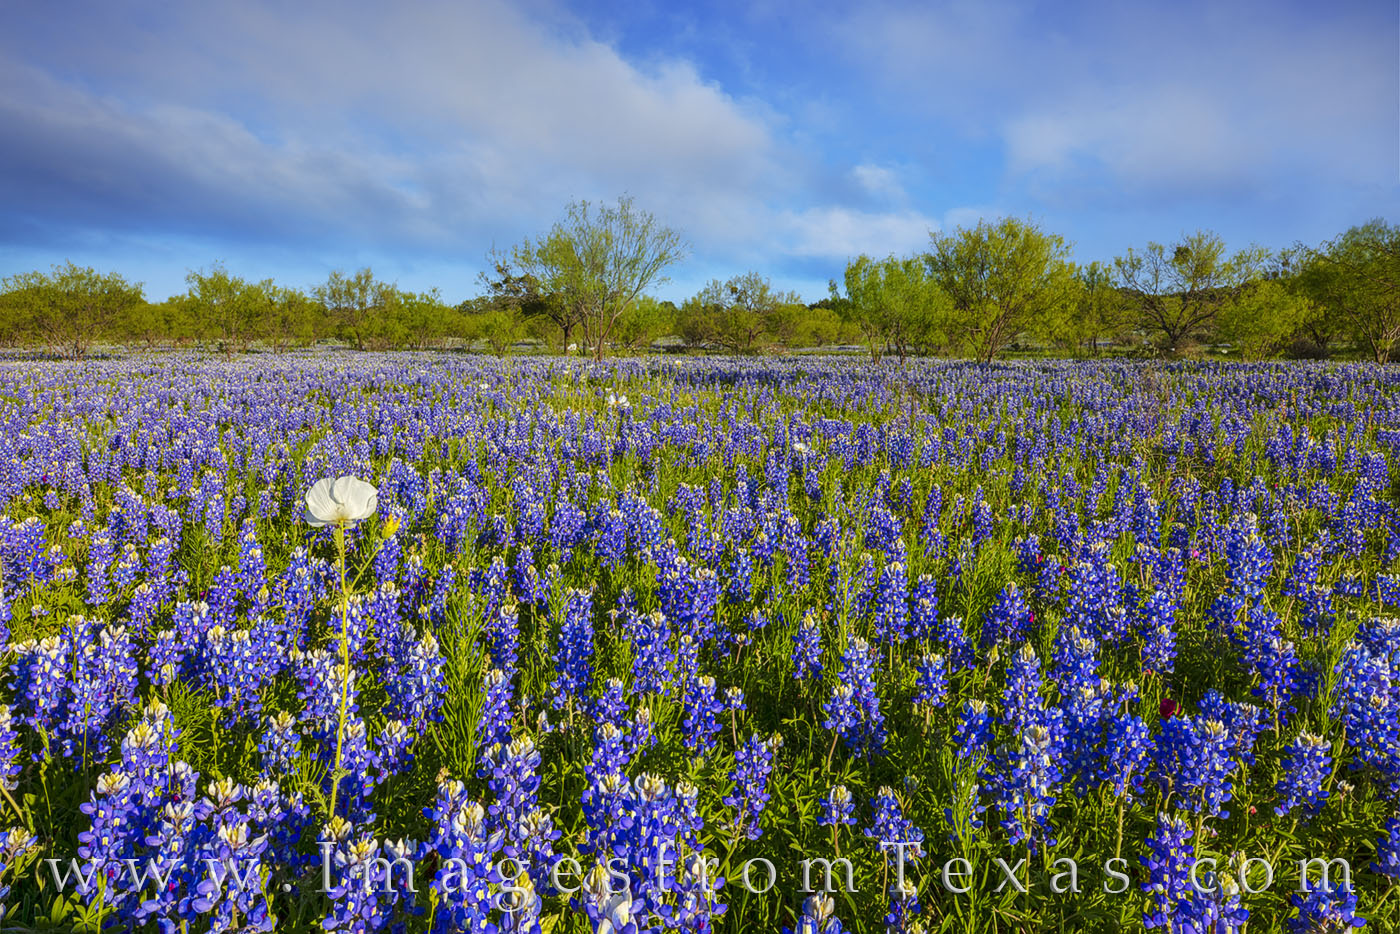 bluebonnets, wildflowers, poppies, hill country, mesquite trees, afternoon, blue, sky, photo